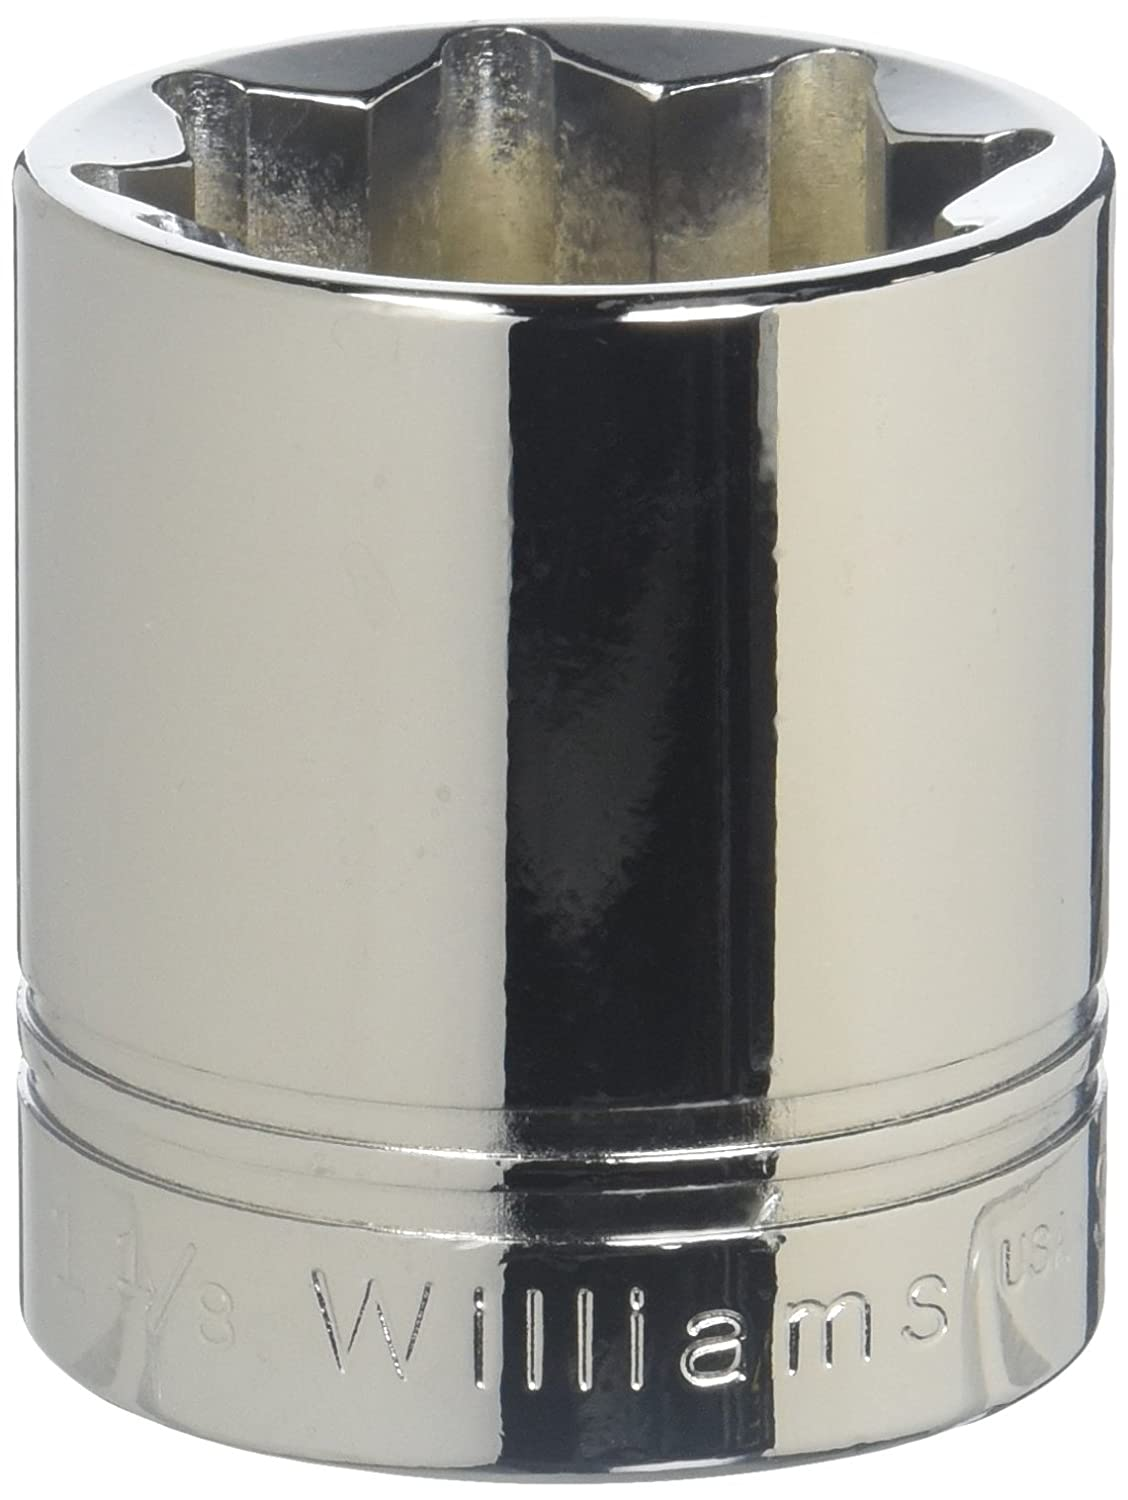 Williams ST-826 1/2 Drive Shallow Socket, 8- Point, 13/16' 13/16 JH Williams Tool Group